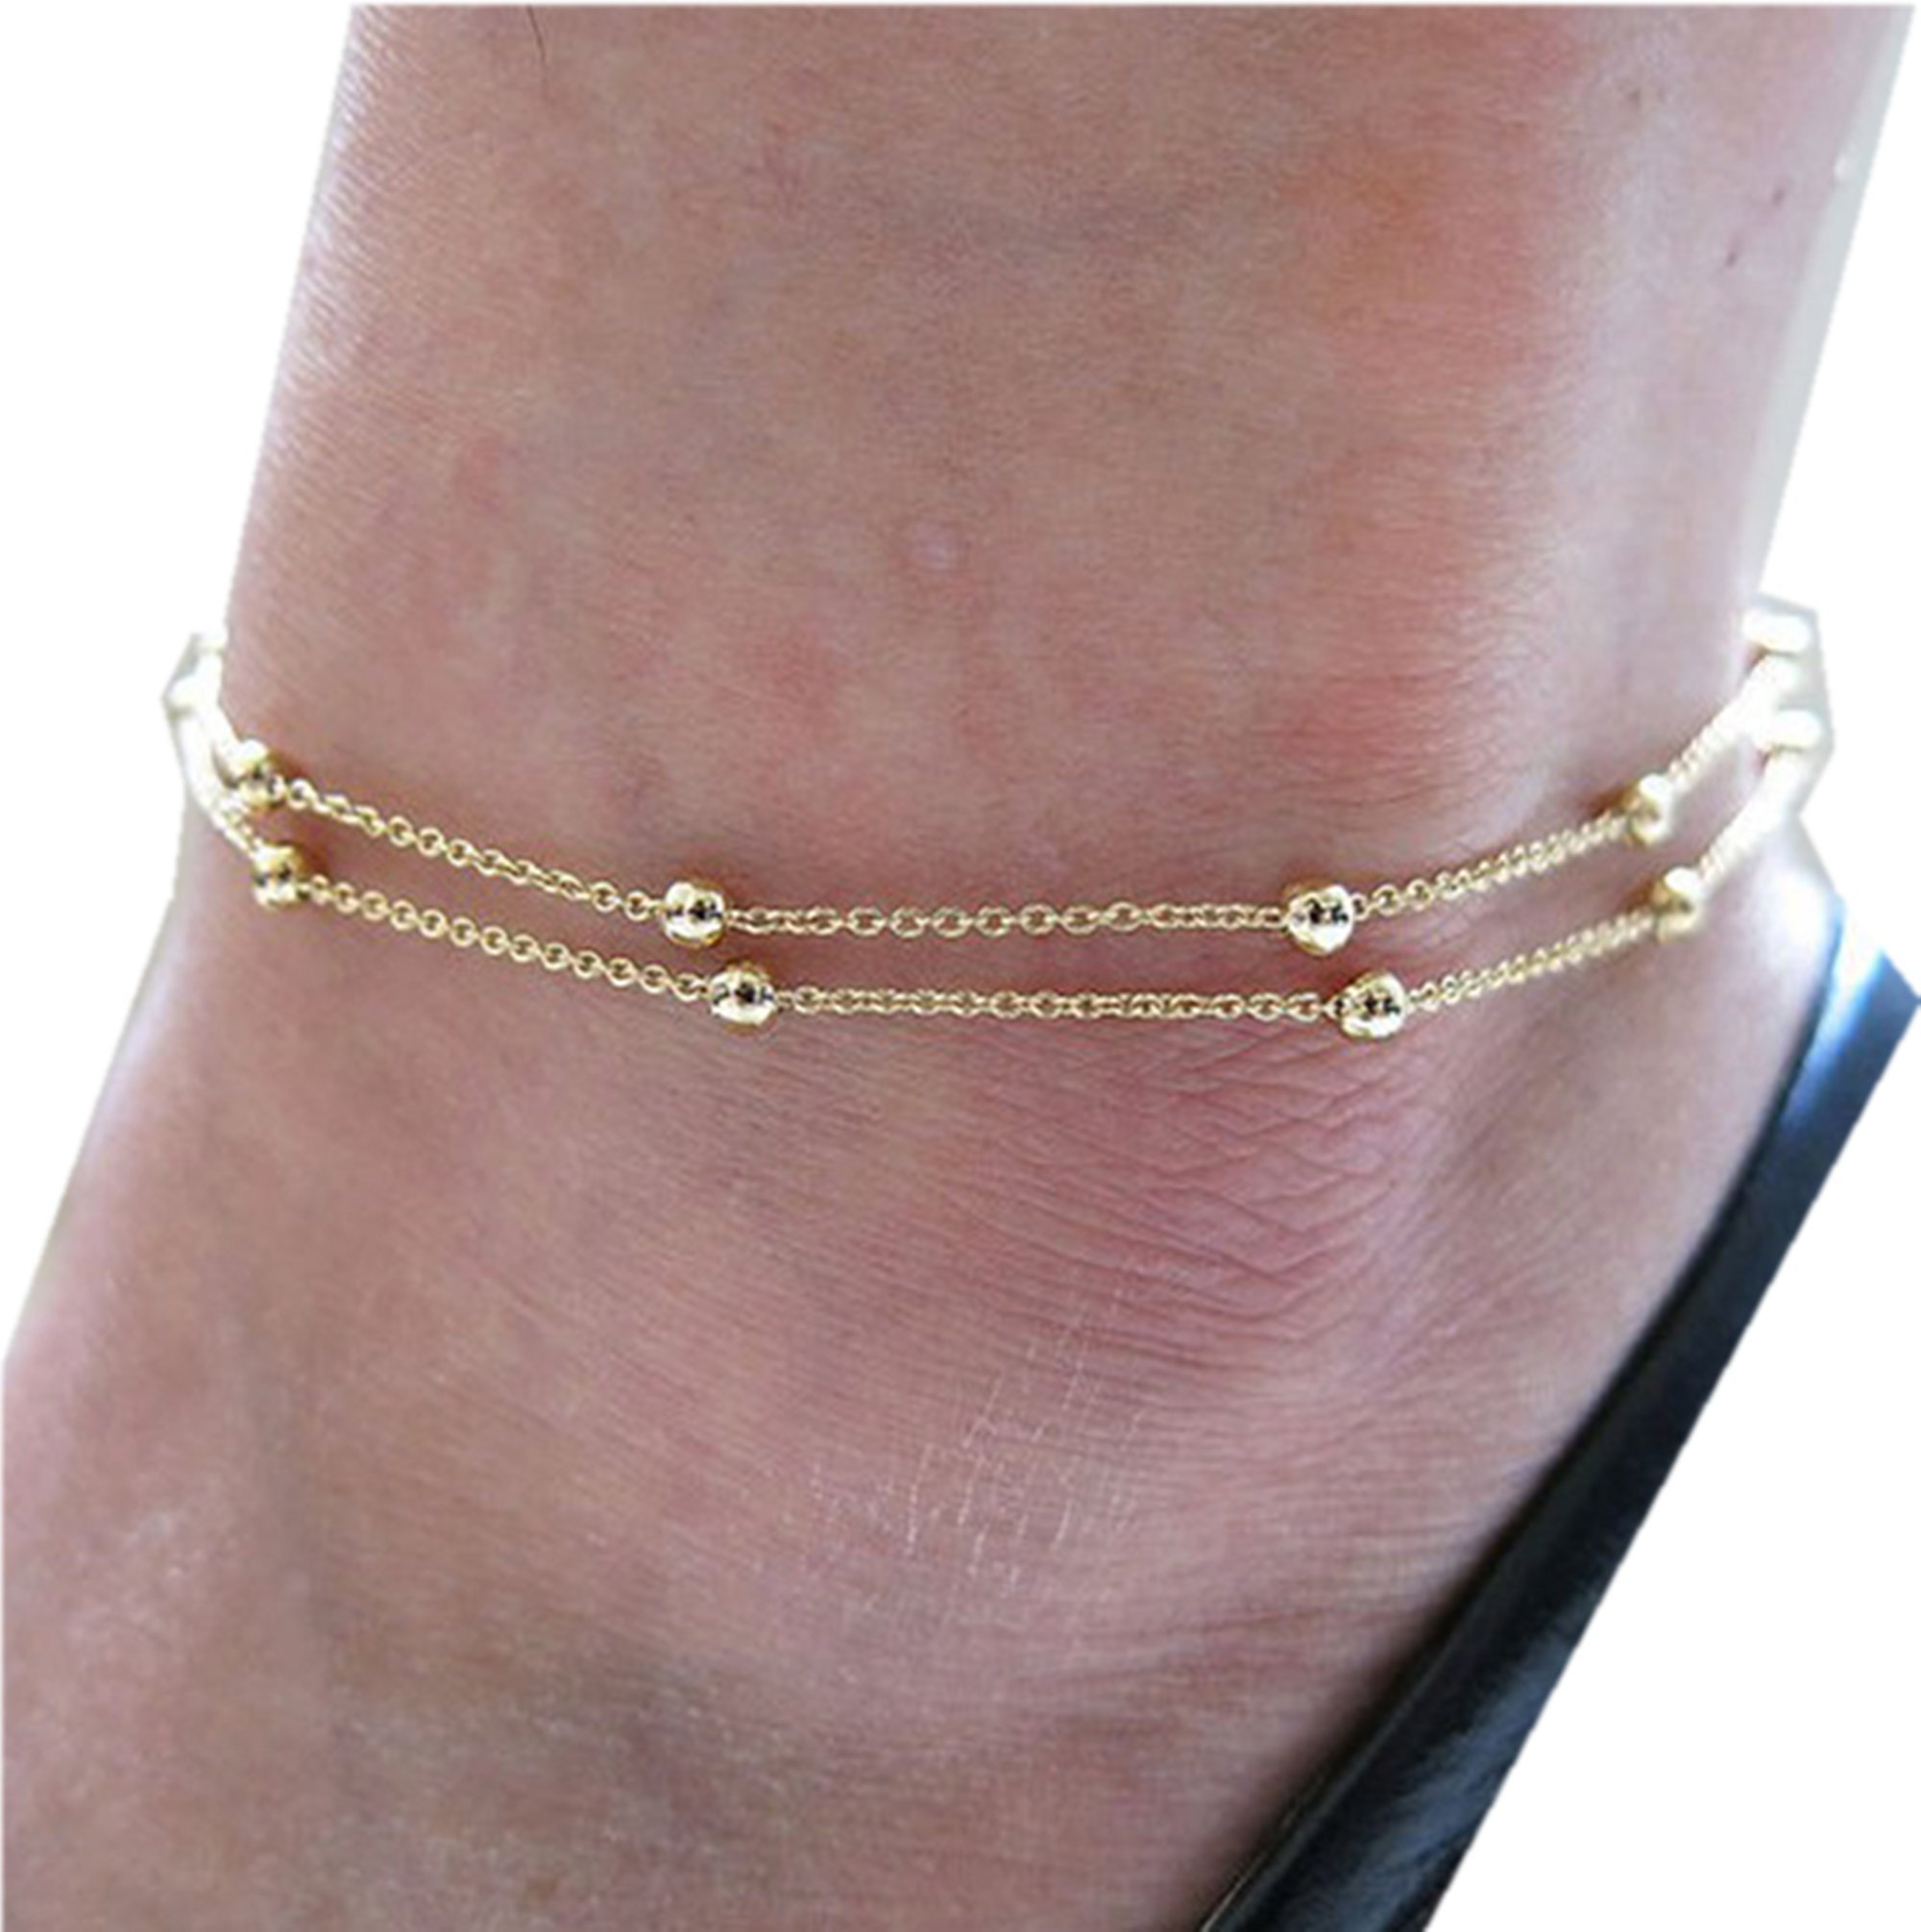 ankle yurman enlarged chain products bracelets box body popular jewelry anklet david bracelet anklets